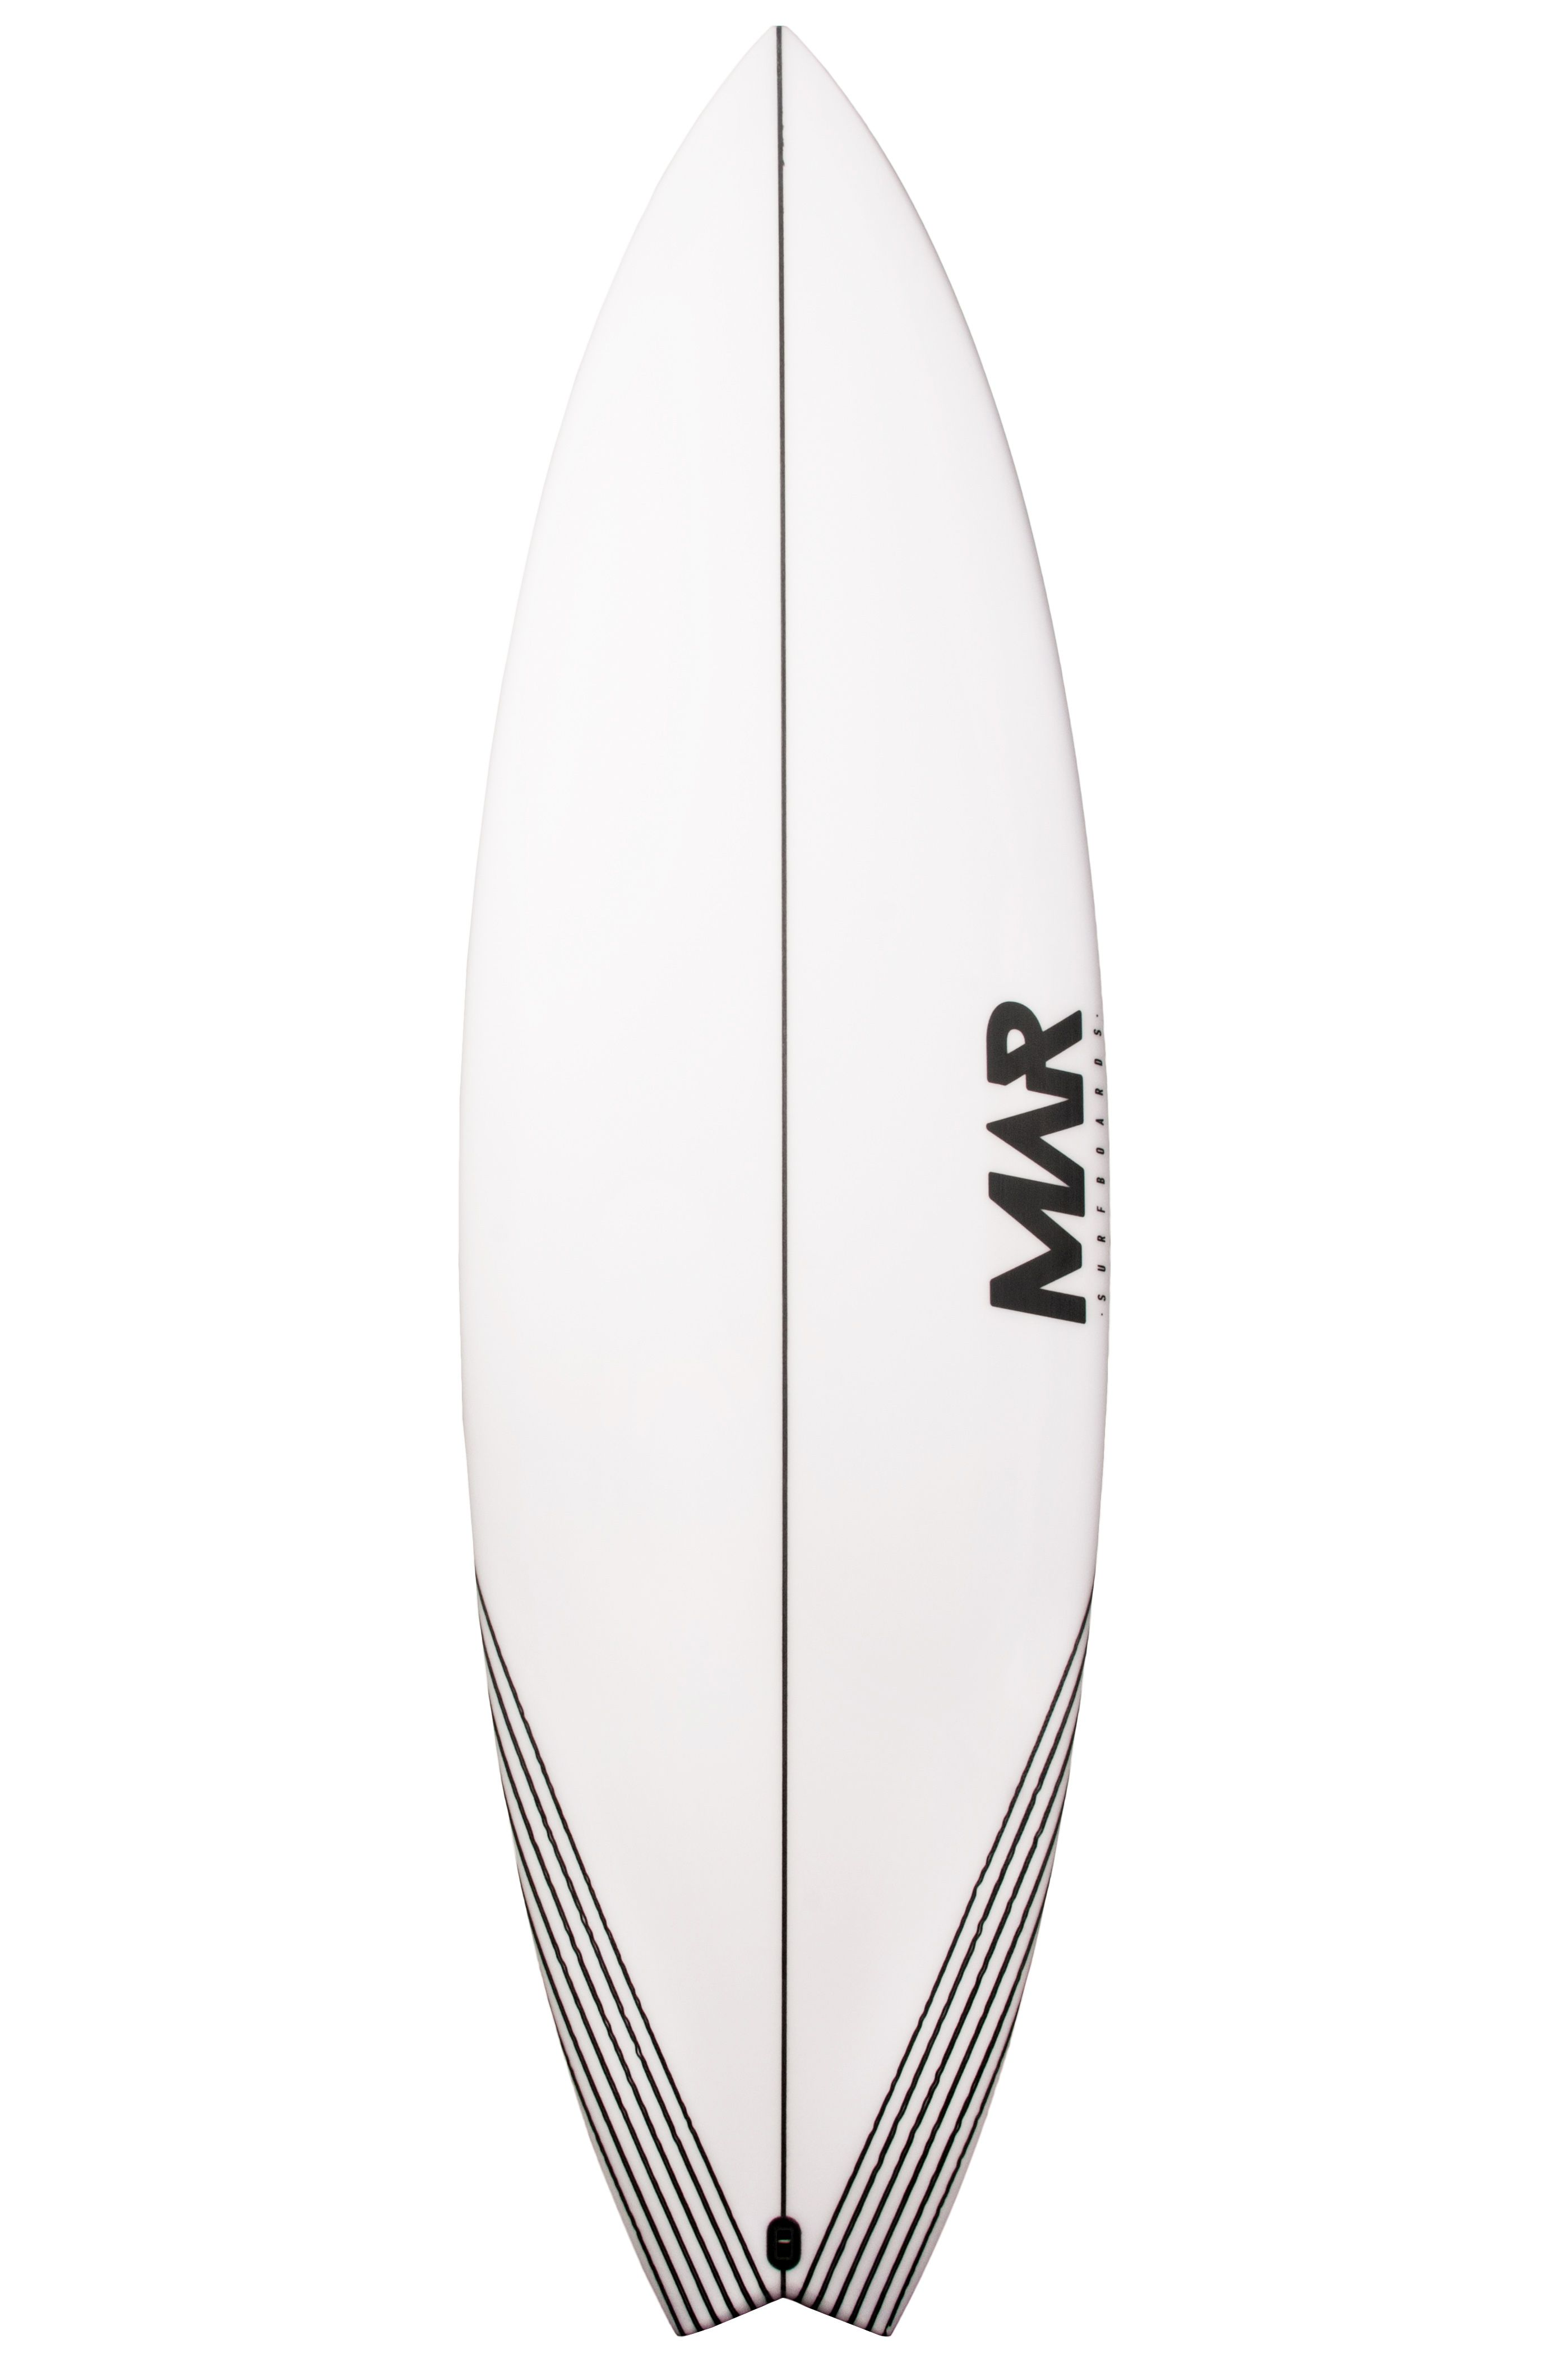 Prancha Surf Mar 6'2 PARROT PU Swallow Tail - White FCS II 6ft2